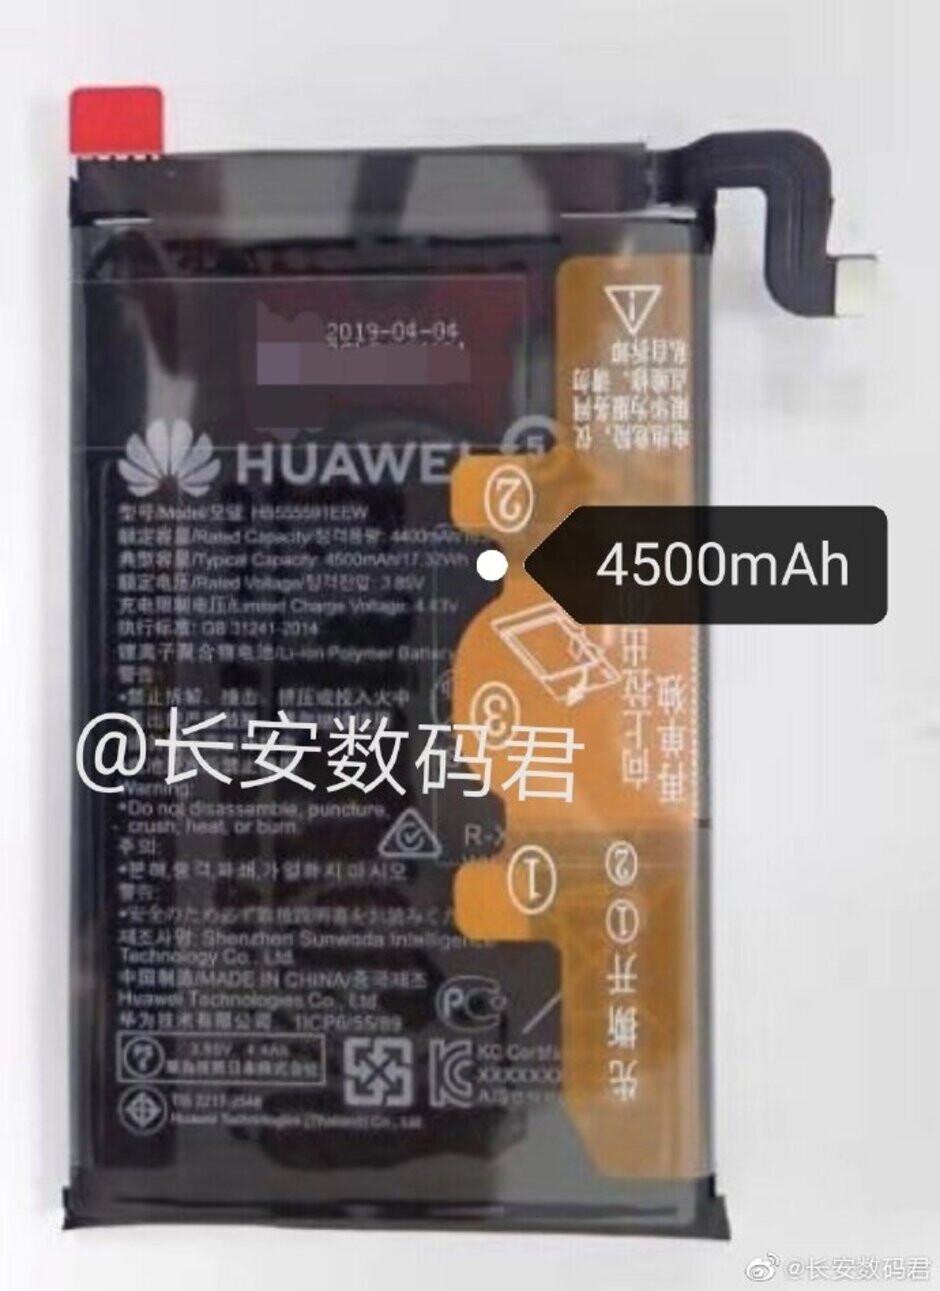 The Huawei Mate 30 Pro will allegedly use this 4500mAh battery - Battery capacities leaked for the Huawei Mate 30 and Mate 30 Pro